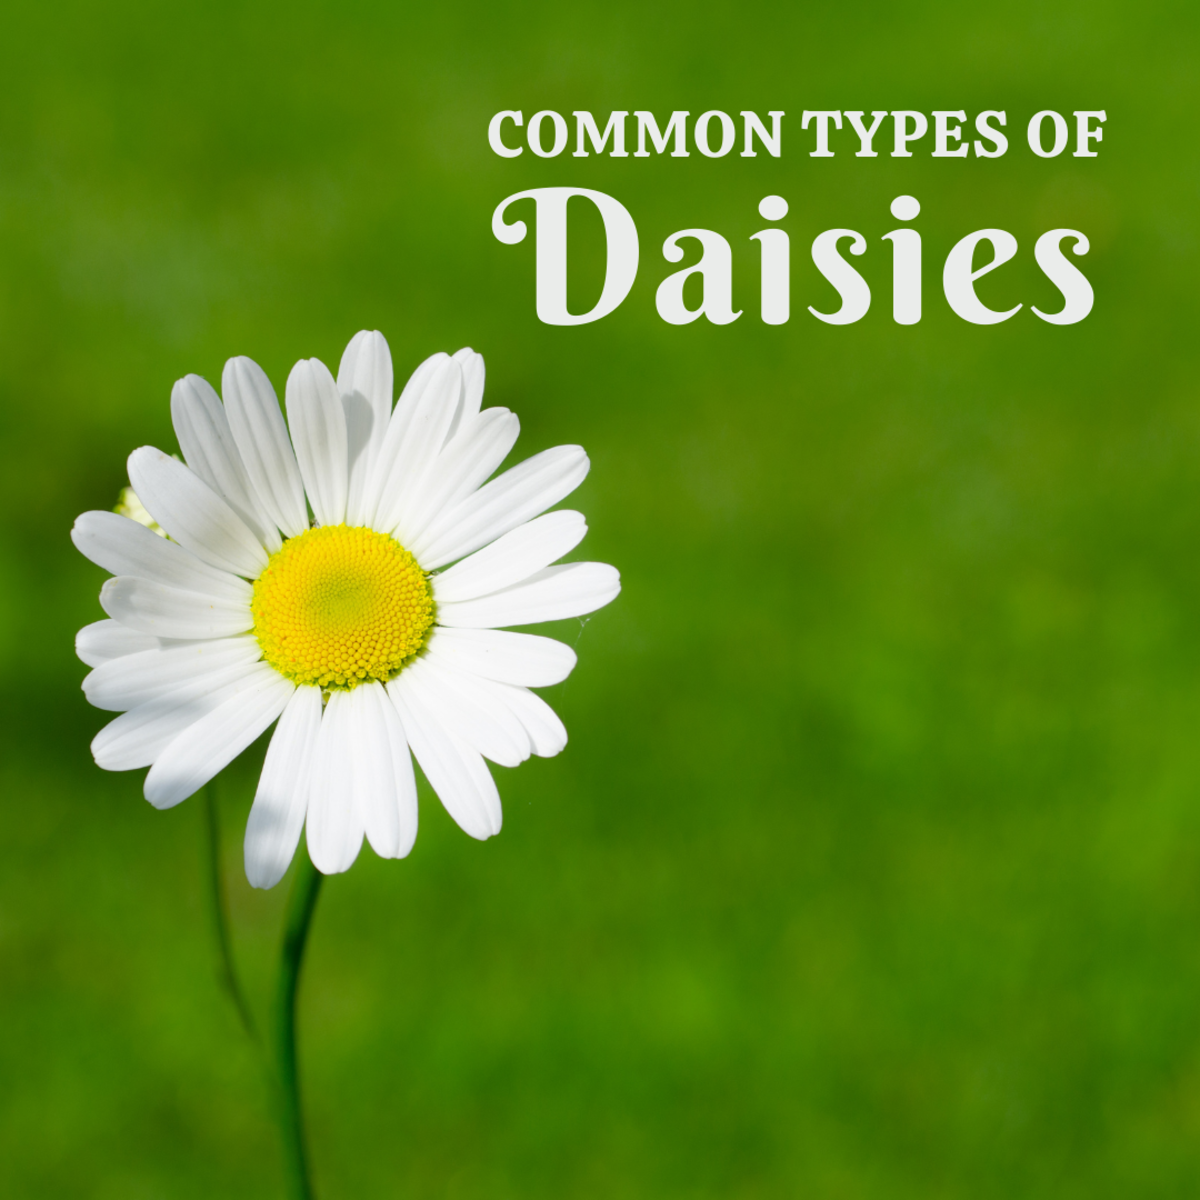 Five Common Types of Daisies